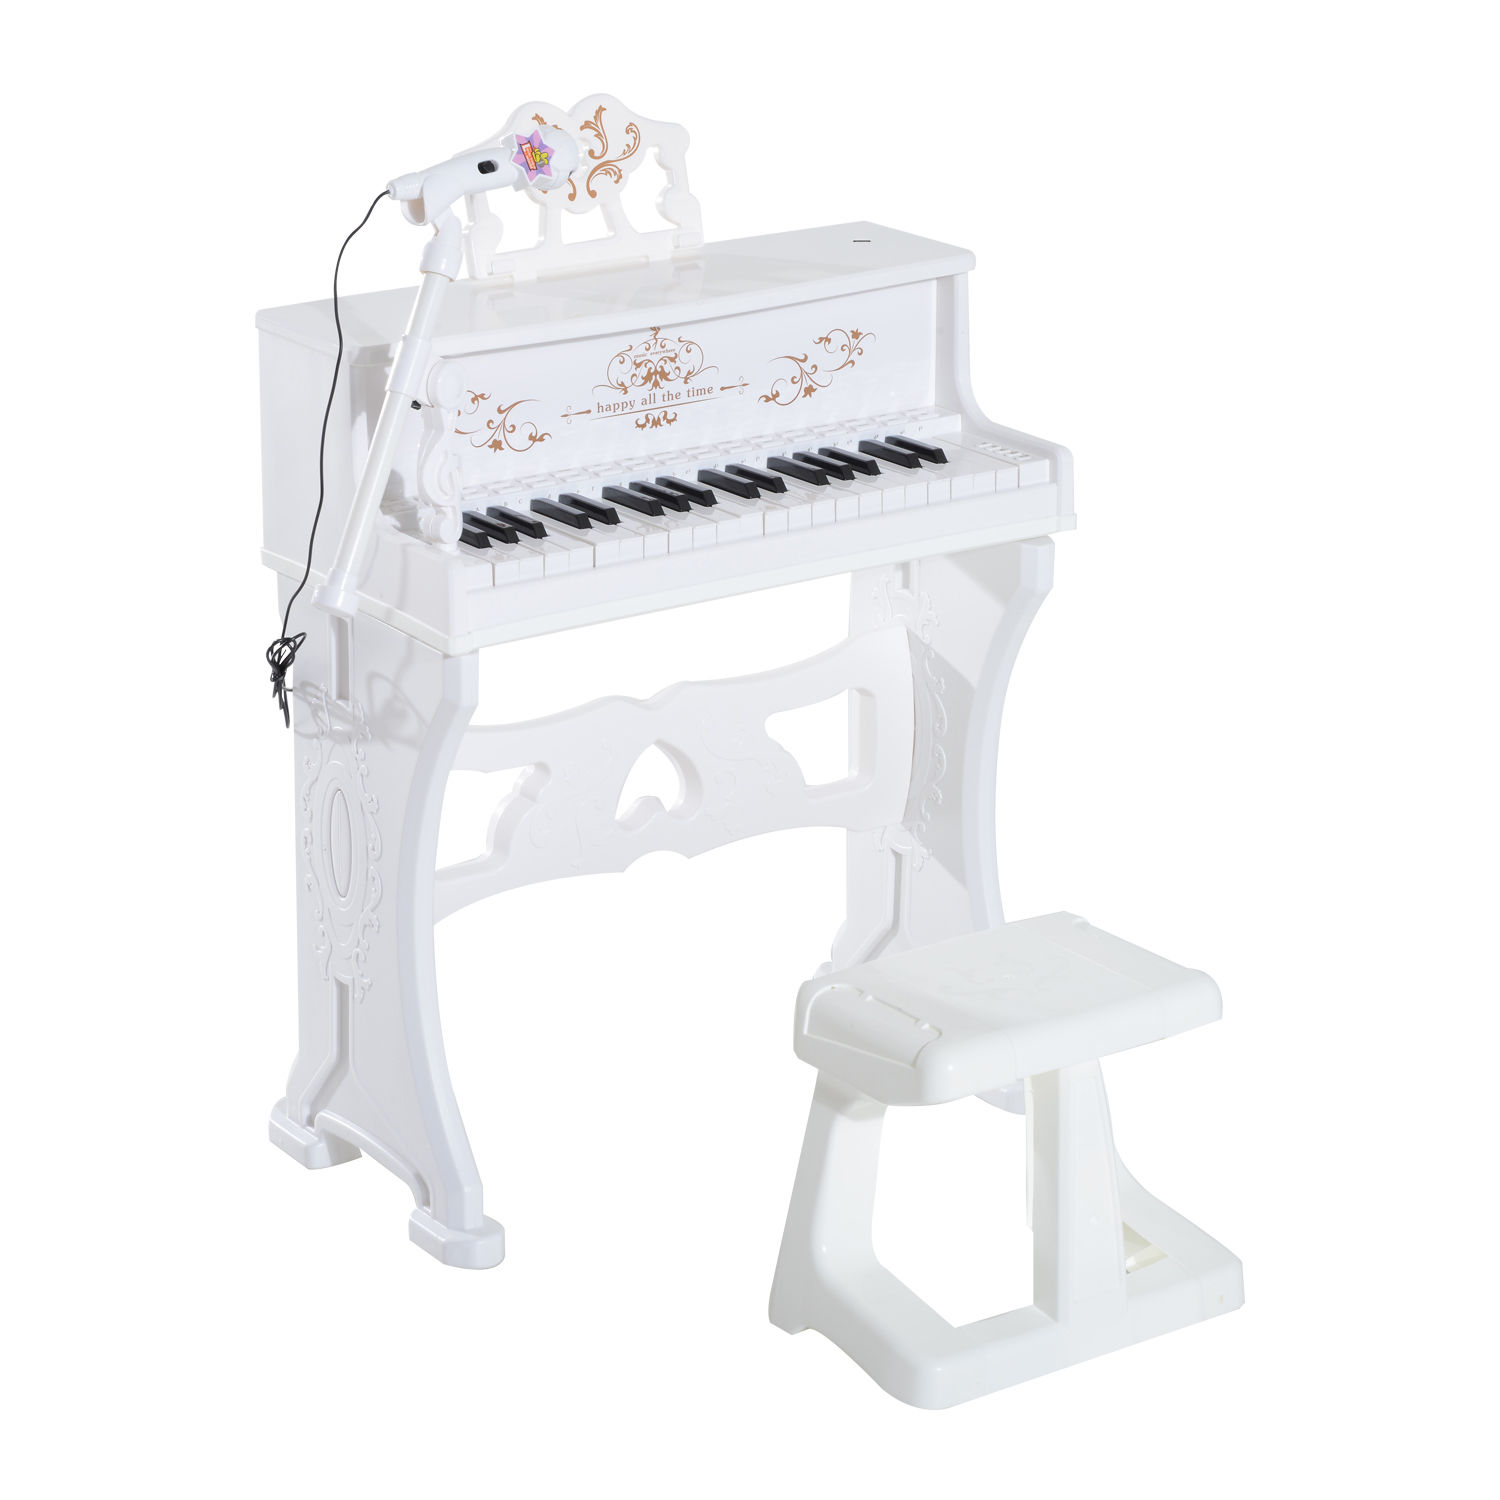 37-32-Key-Kids-Electronic-Keyboard-Mini-Grand-Piano-Stool-Microphone-Musical-Toy thumbnail 53